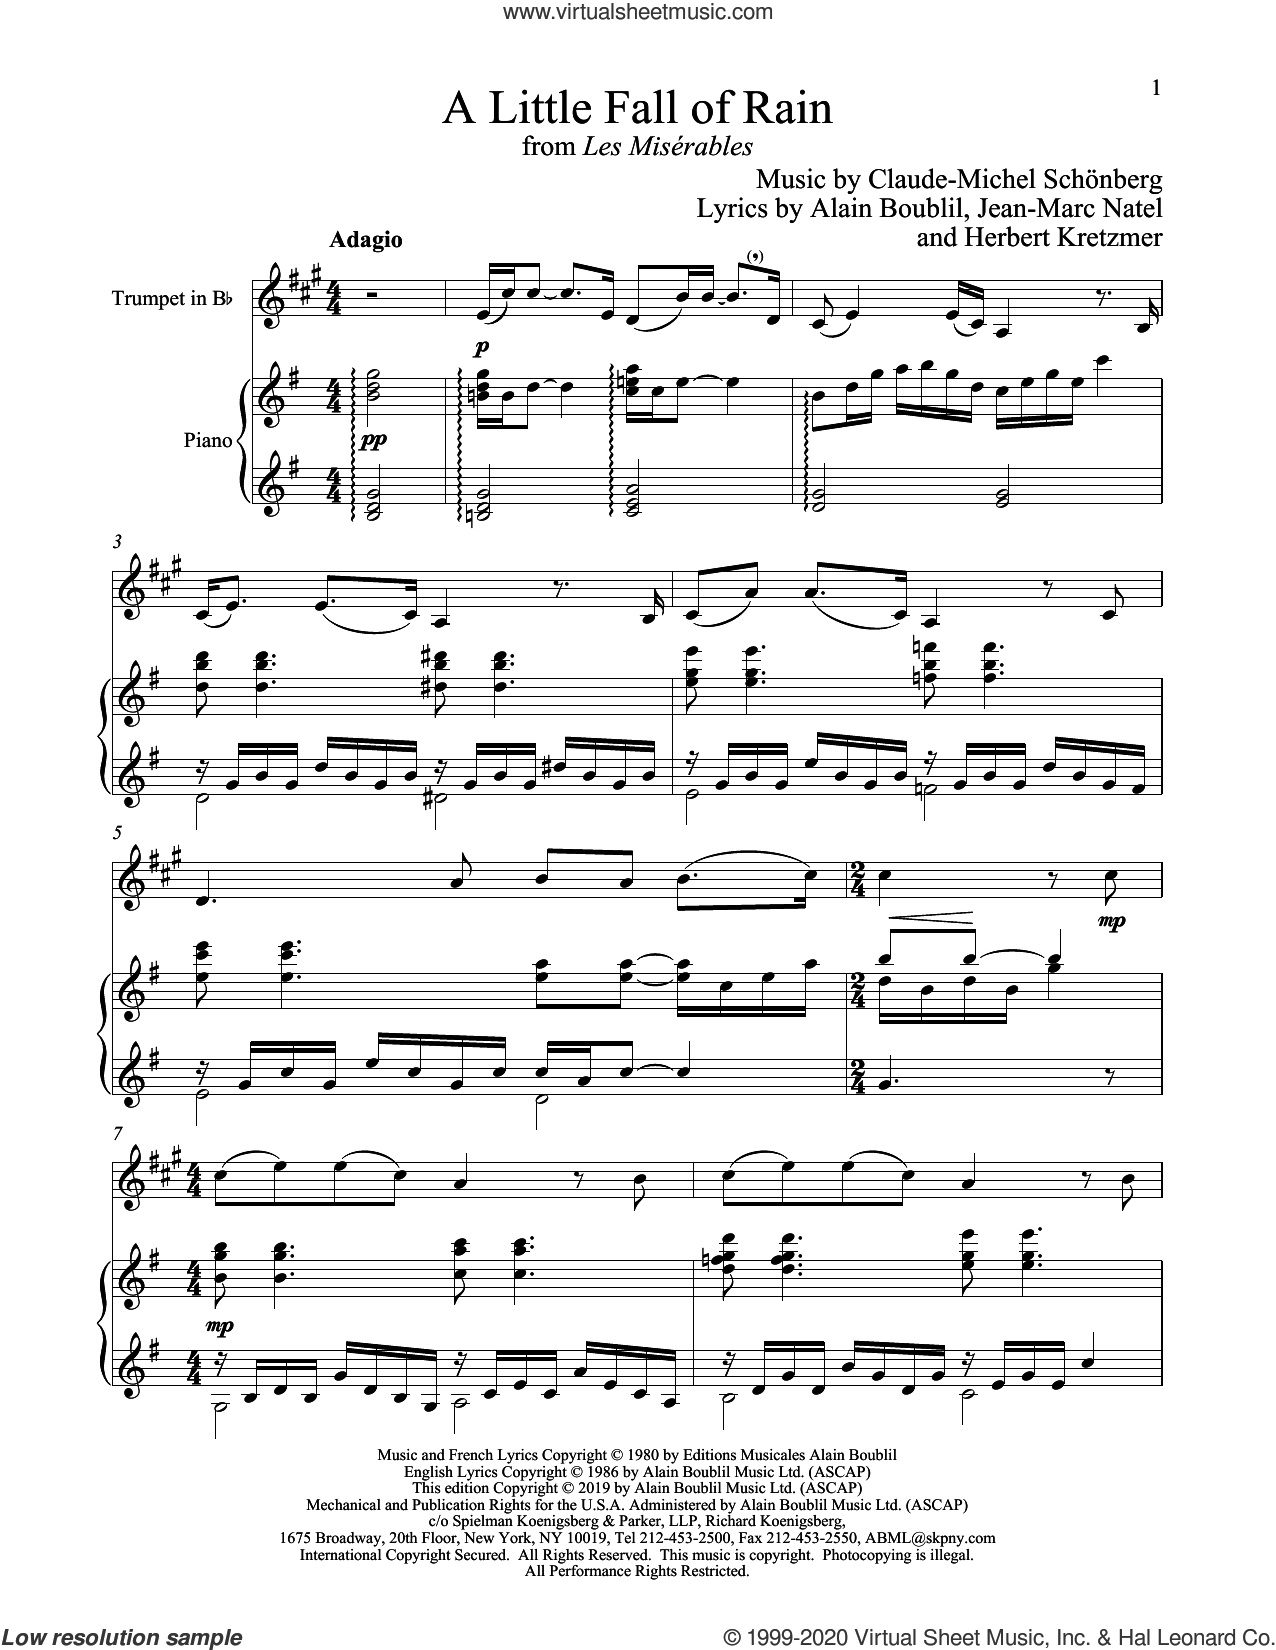 A Little Fall Of Rain (from Les Miserables) sheet music for trumpet and piano by Alain Boublil, Boublil and Schonberg, Claude-Michel Schonberg, Claude-Michel Schonberg, Herbert Kretzmer and Jean-Marc Natel, intermediate skill level